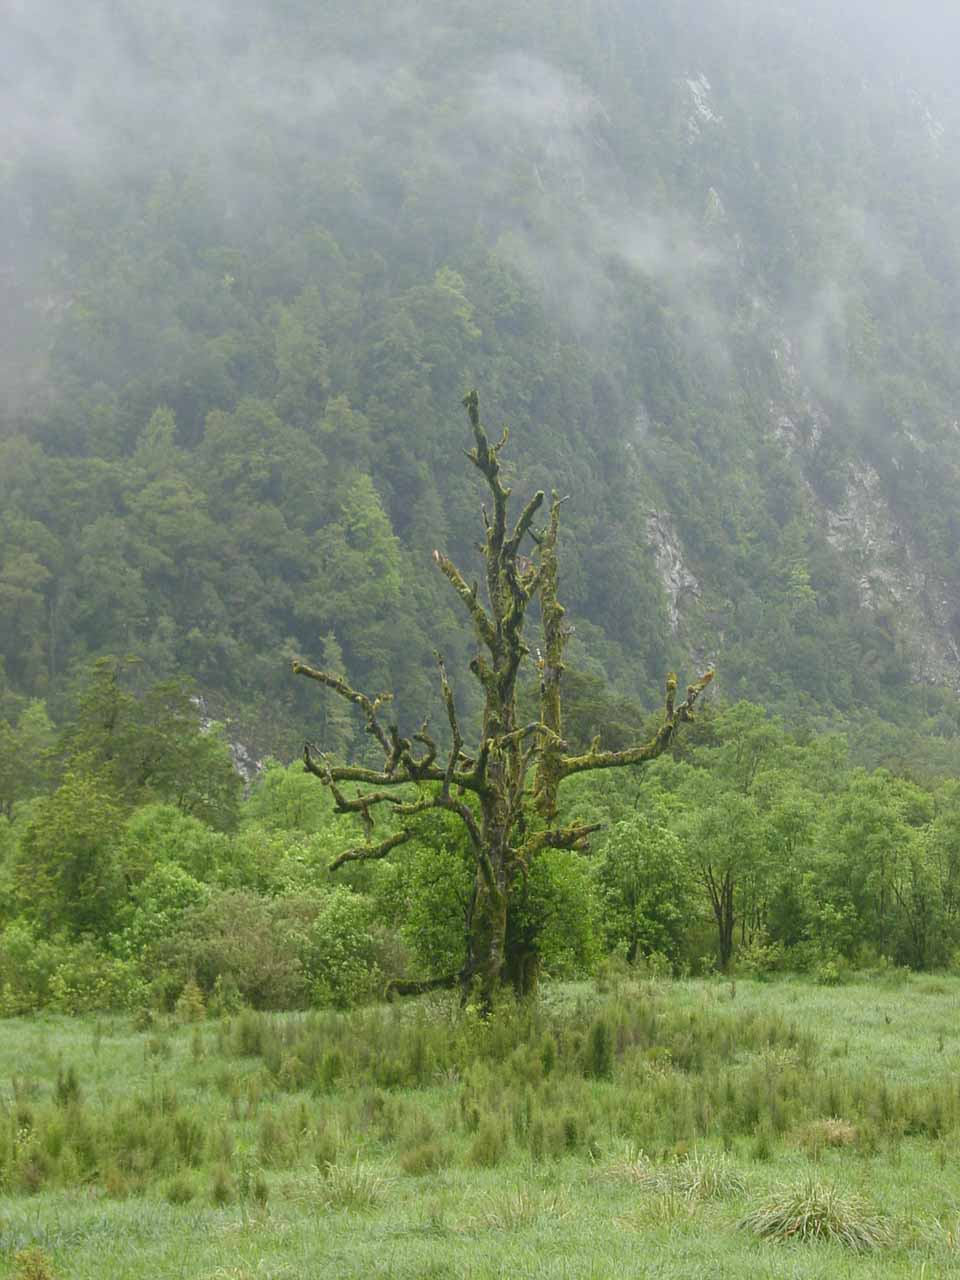 A ghostly-looking mossy tree in an open part of Day 4 of the Milford Track